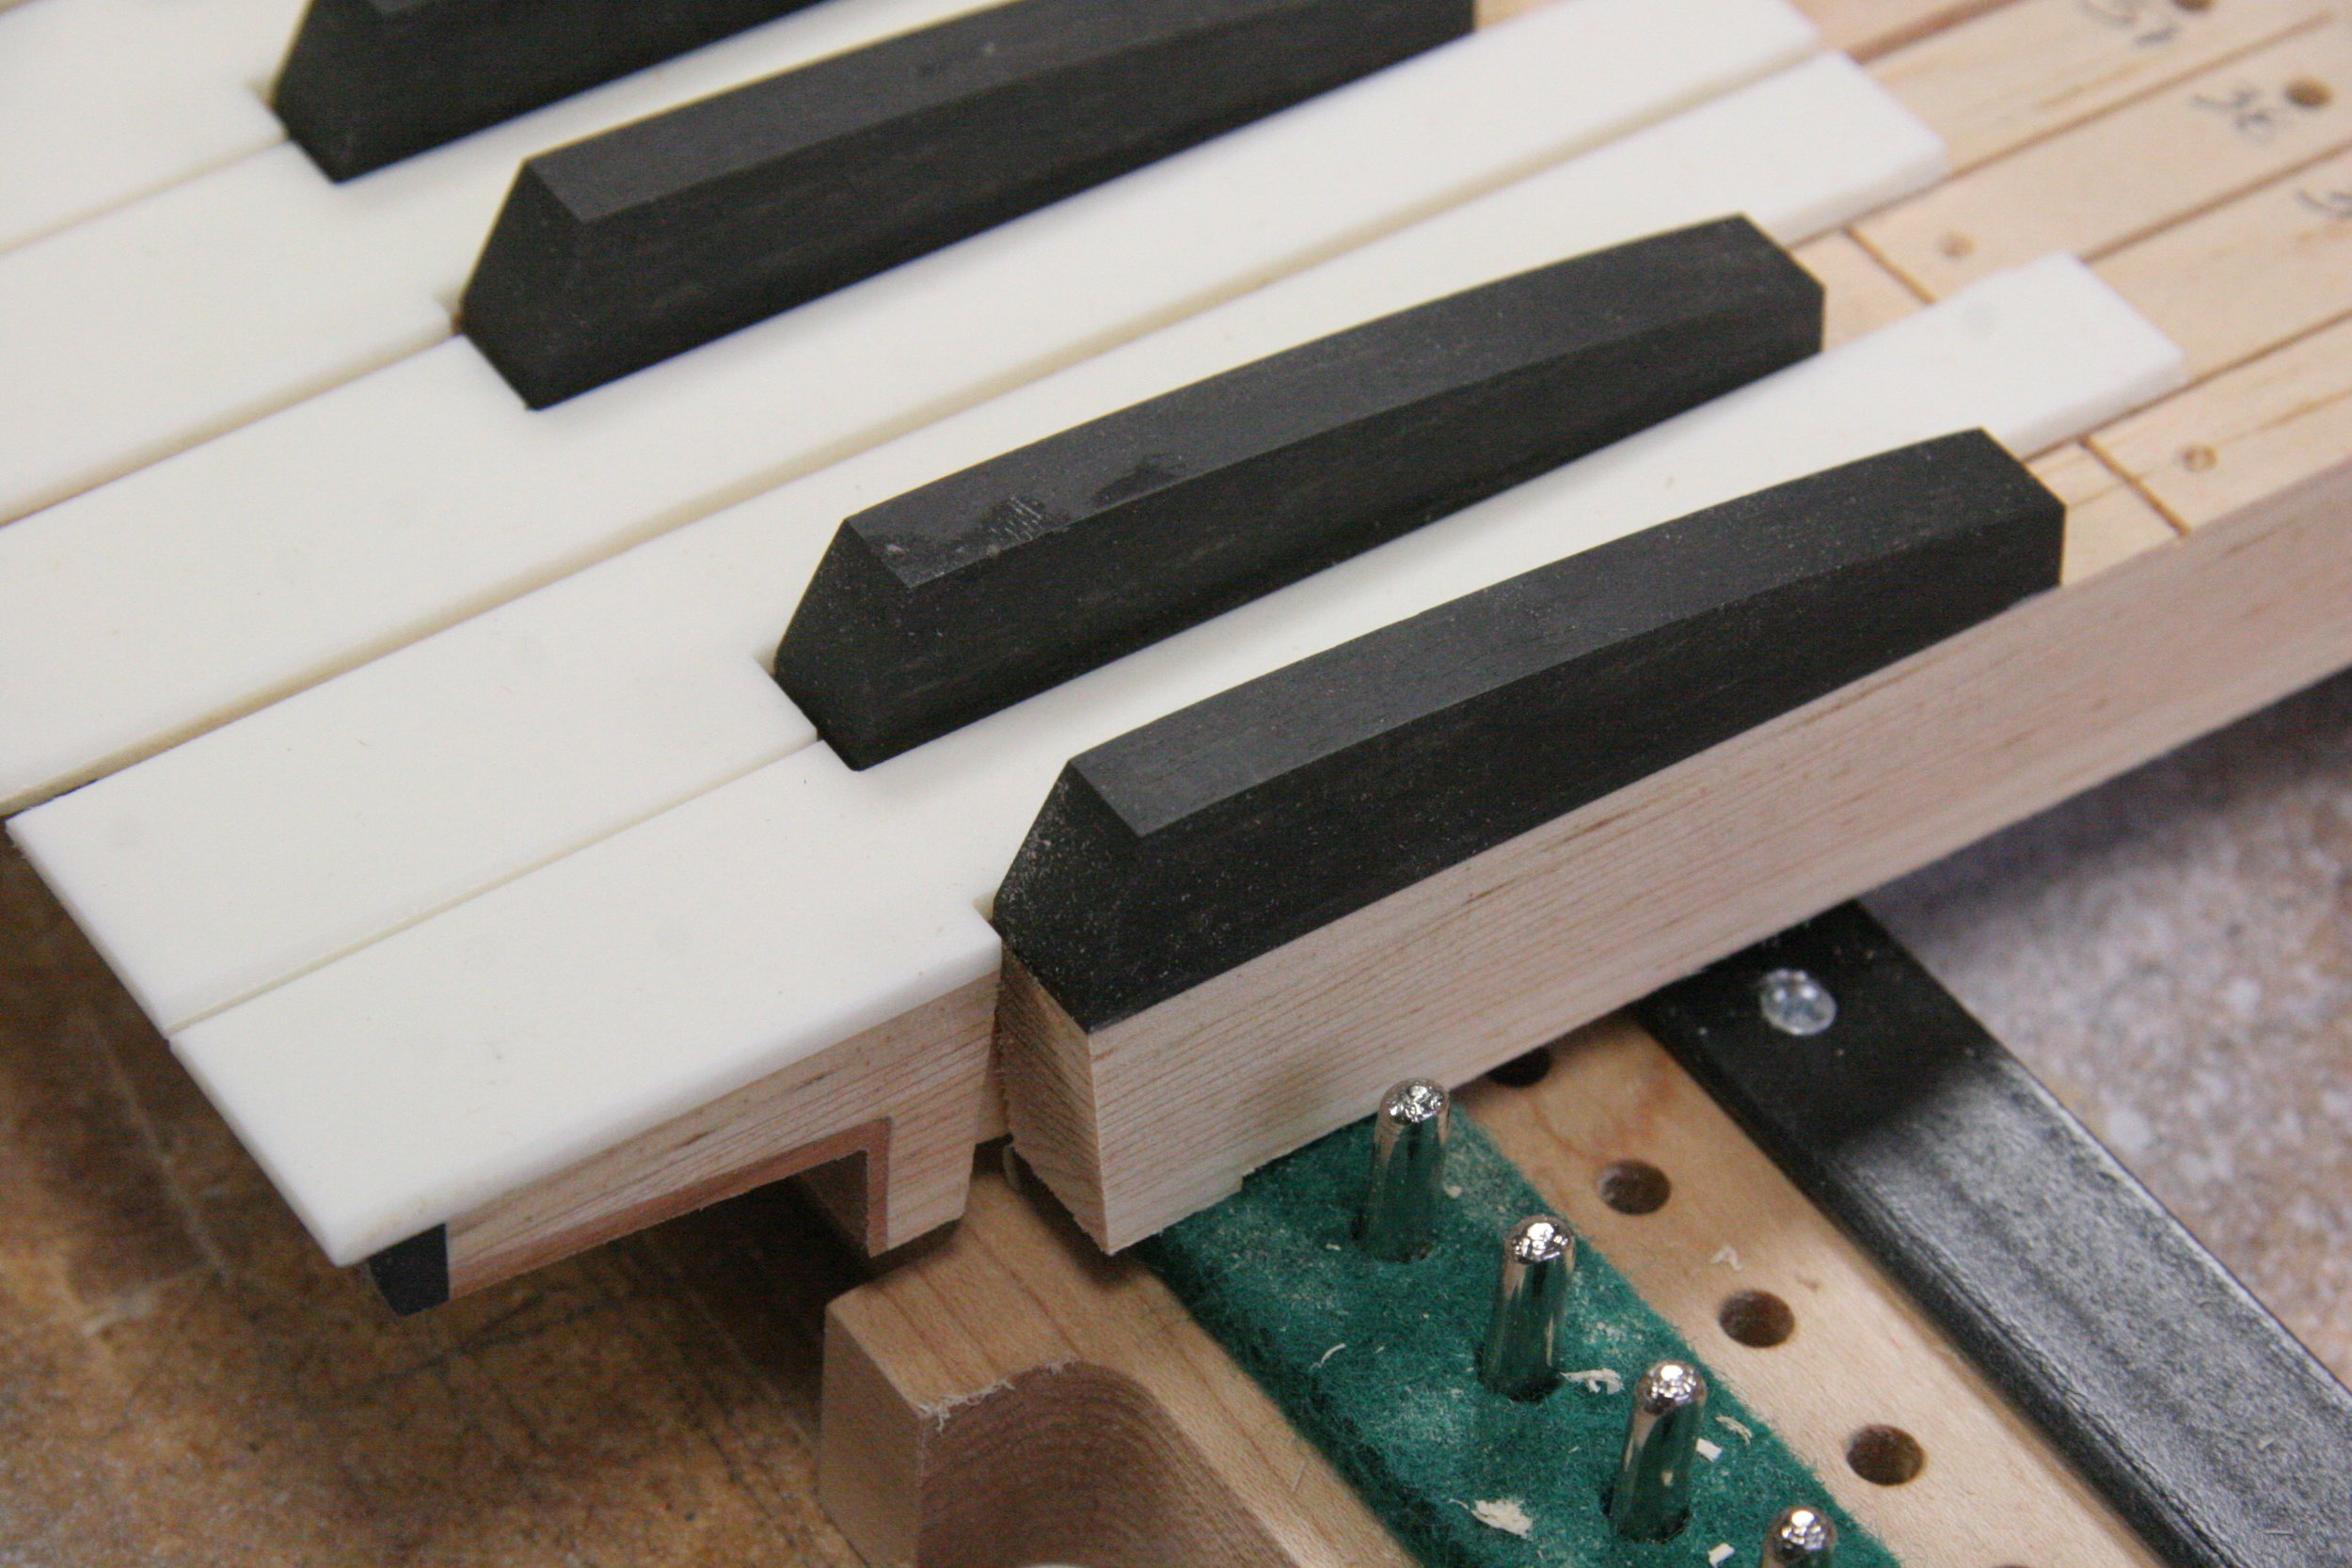 Construction detail showing cherry and ebony covers on key under-cut and sharps of ebony.